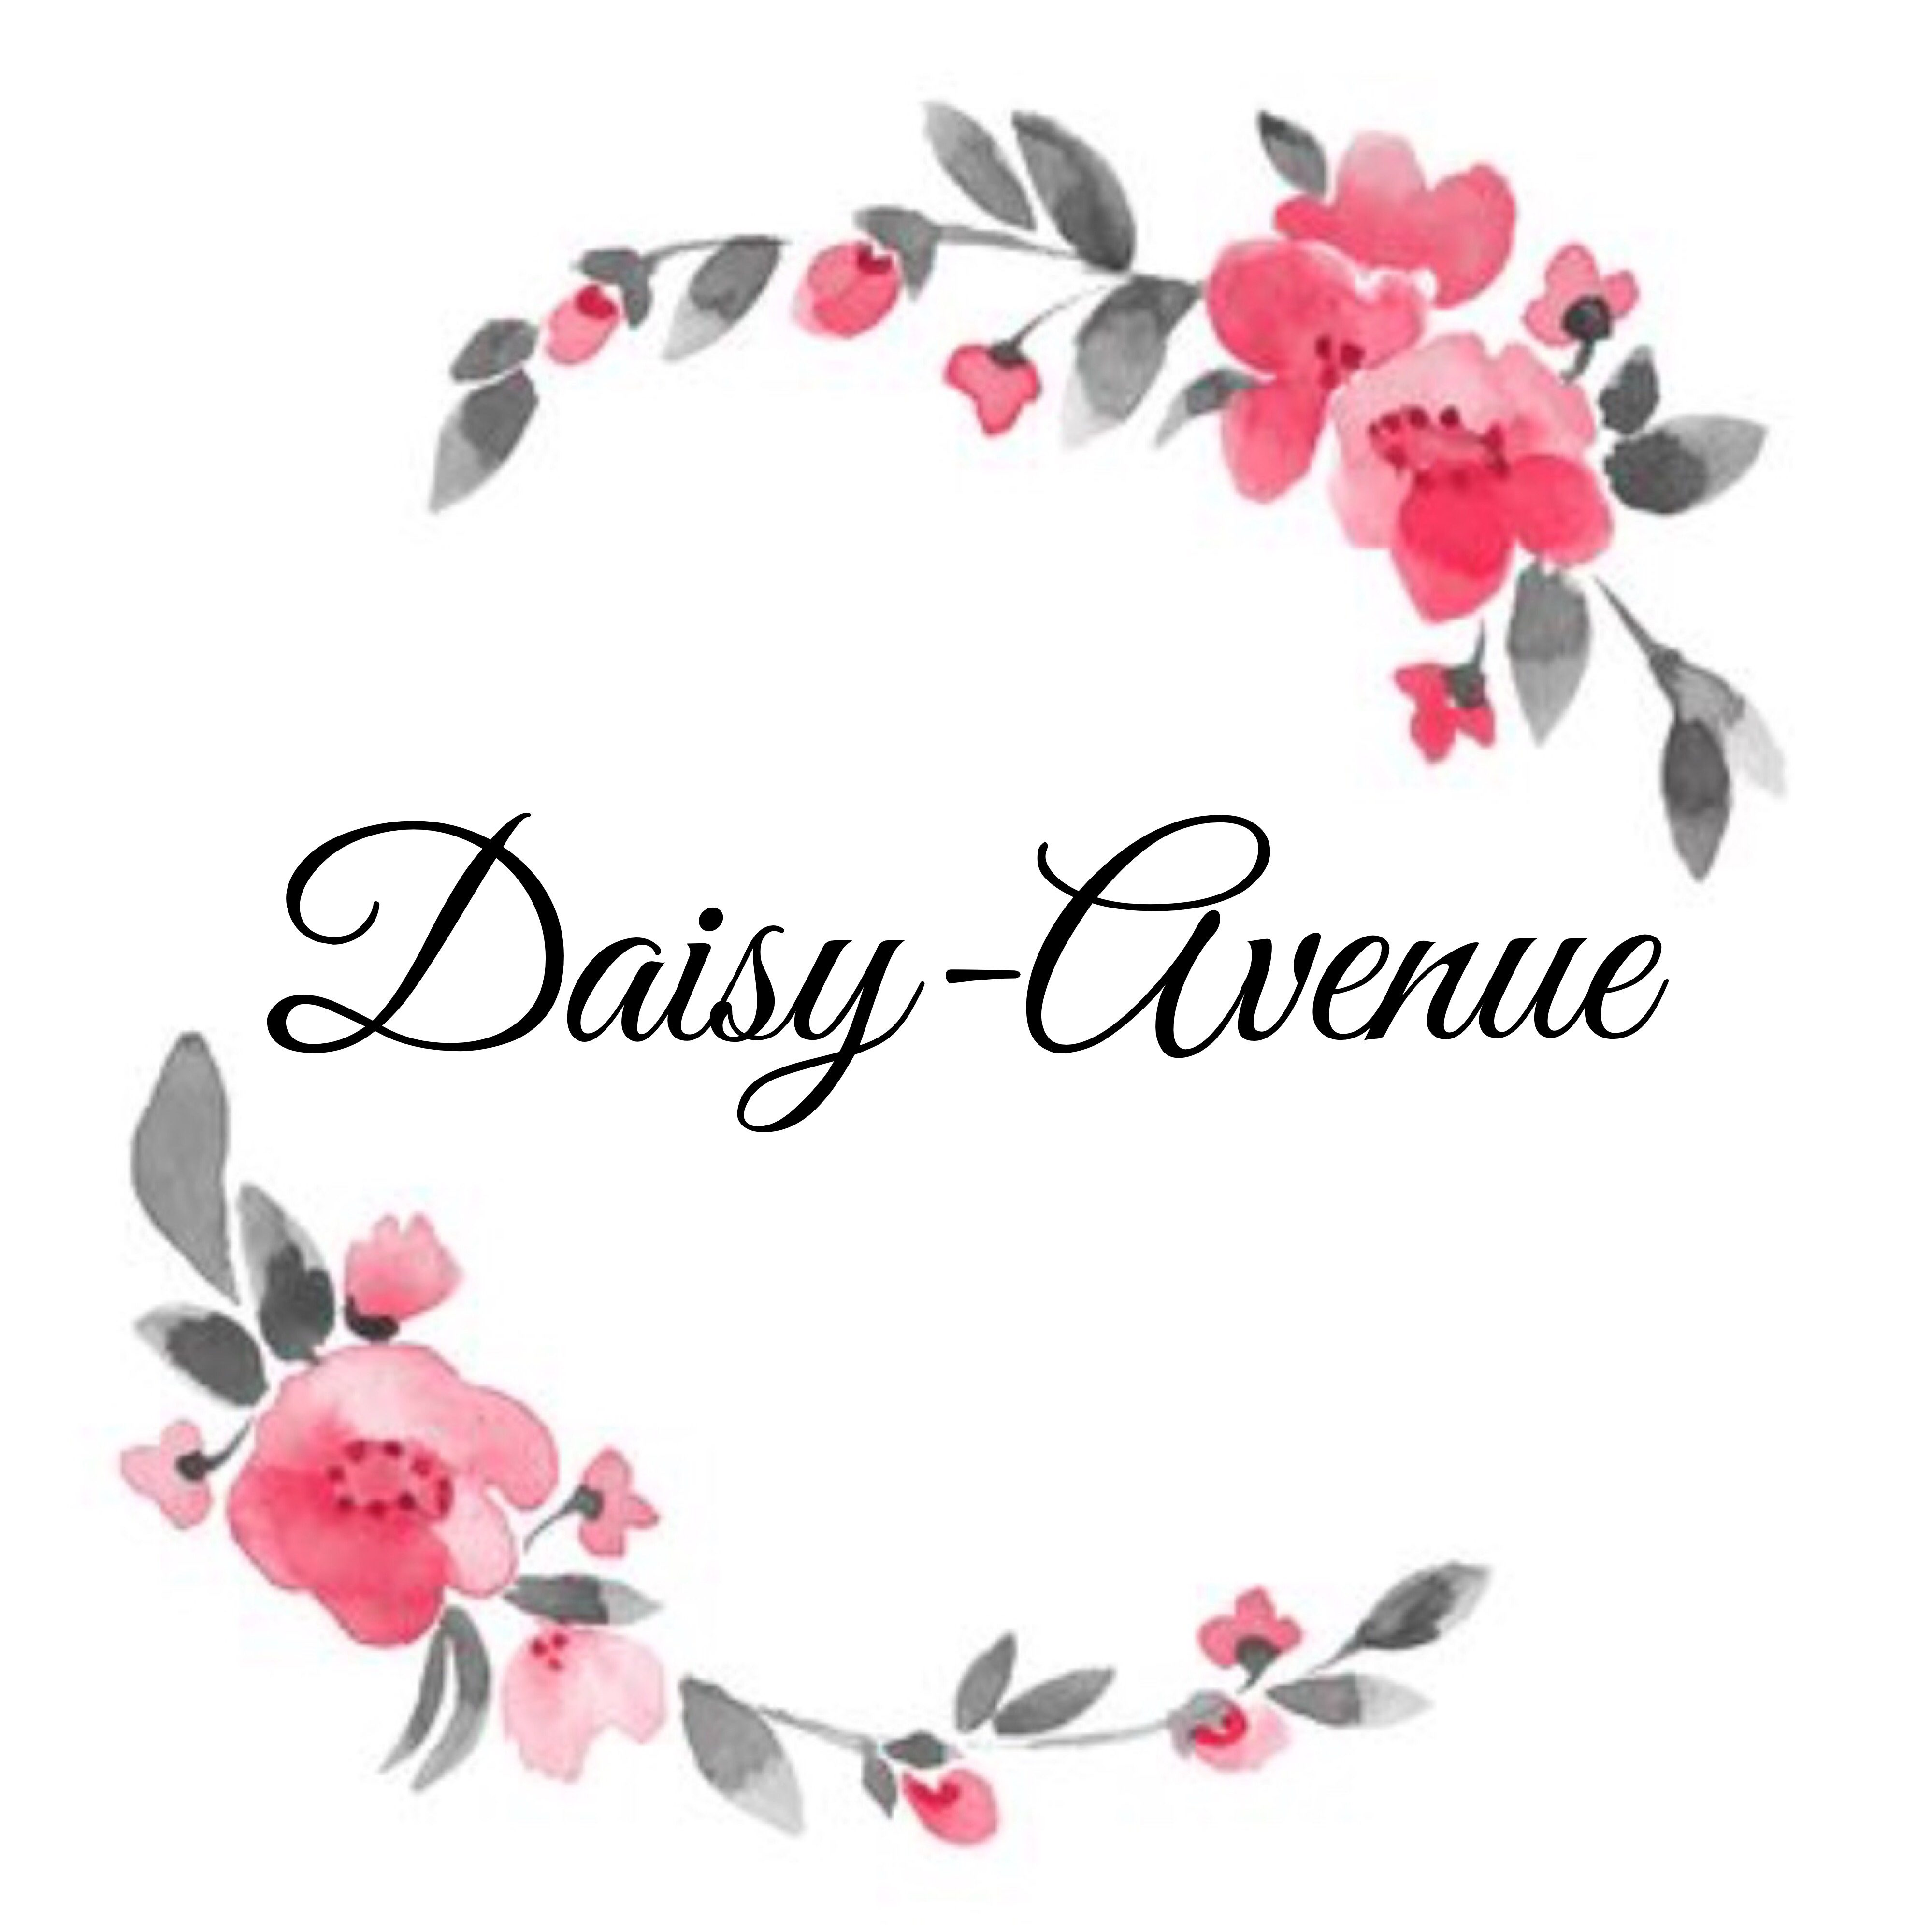 DaisyAvenue